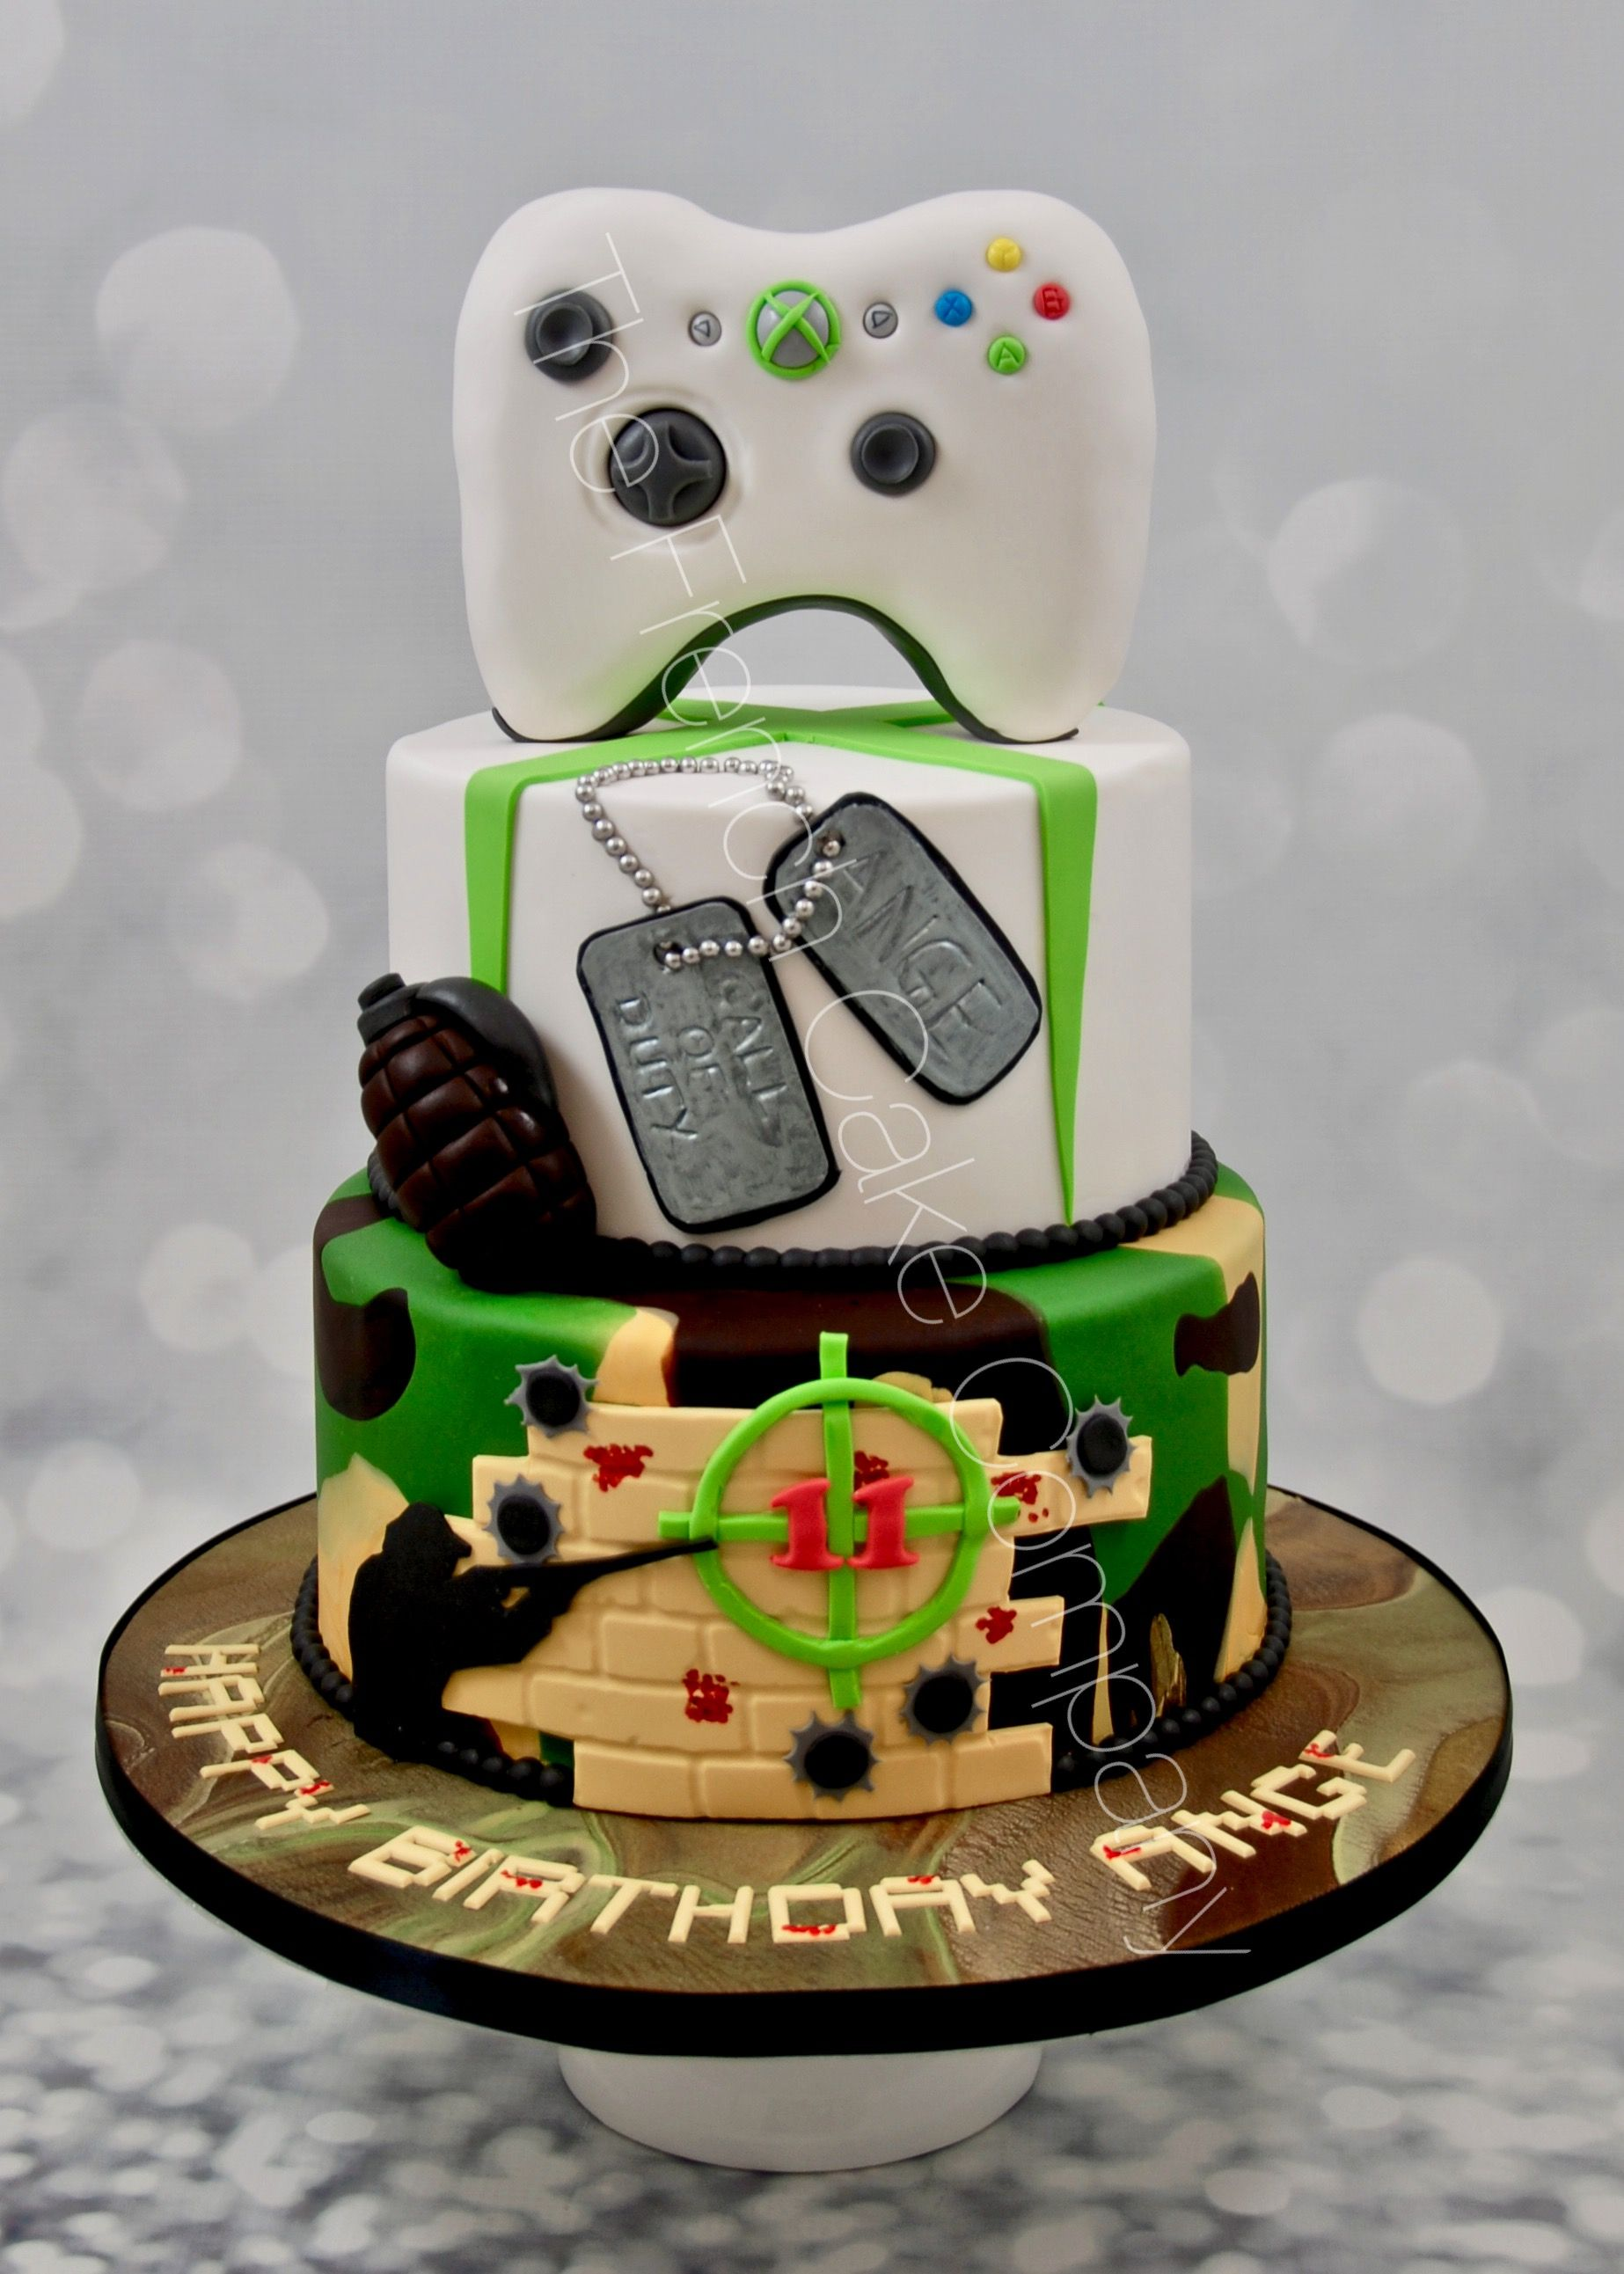 pi ce mont e d 39 anniversaire originale th me jeu video call of duty manette de jeu xbox cake. Black Bedroom Furniture Sets. Home Design Ideas